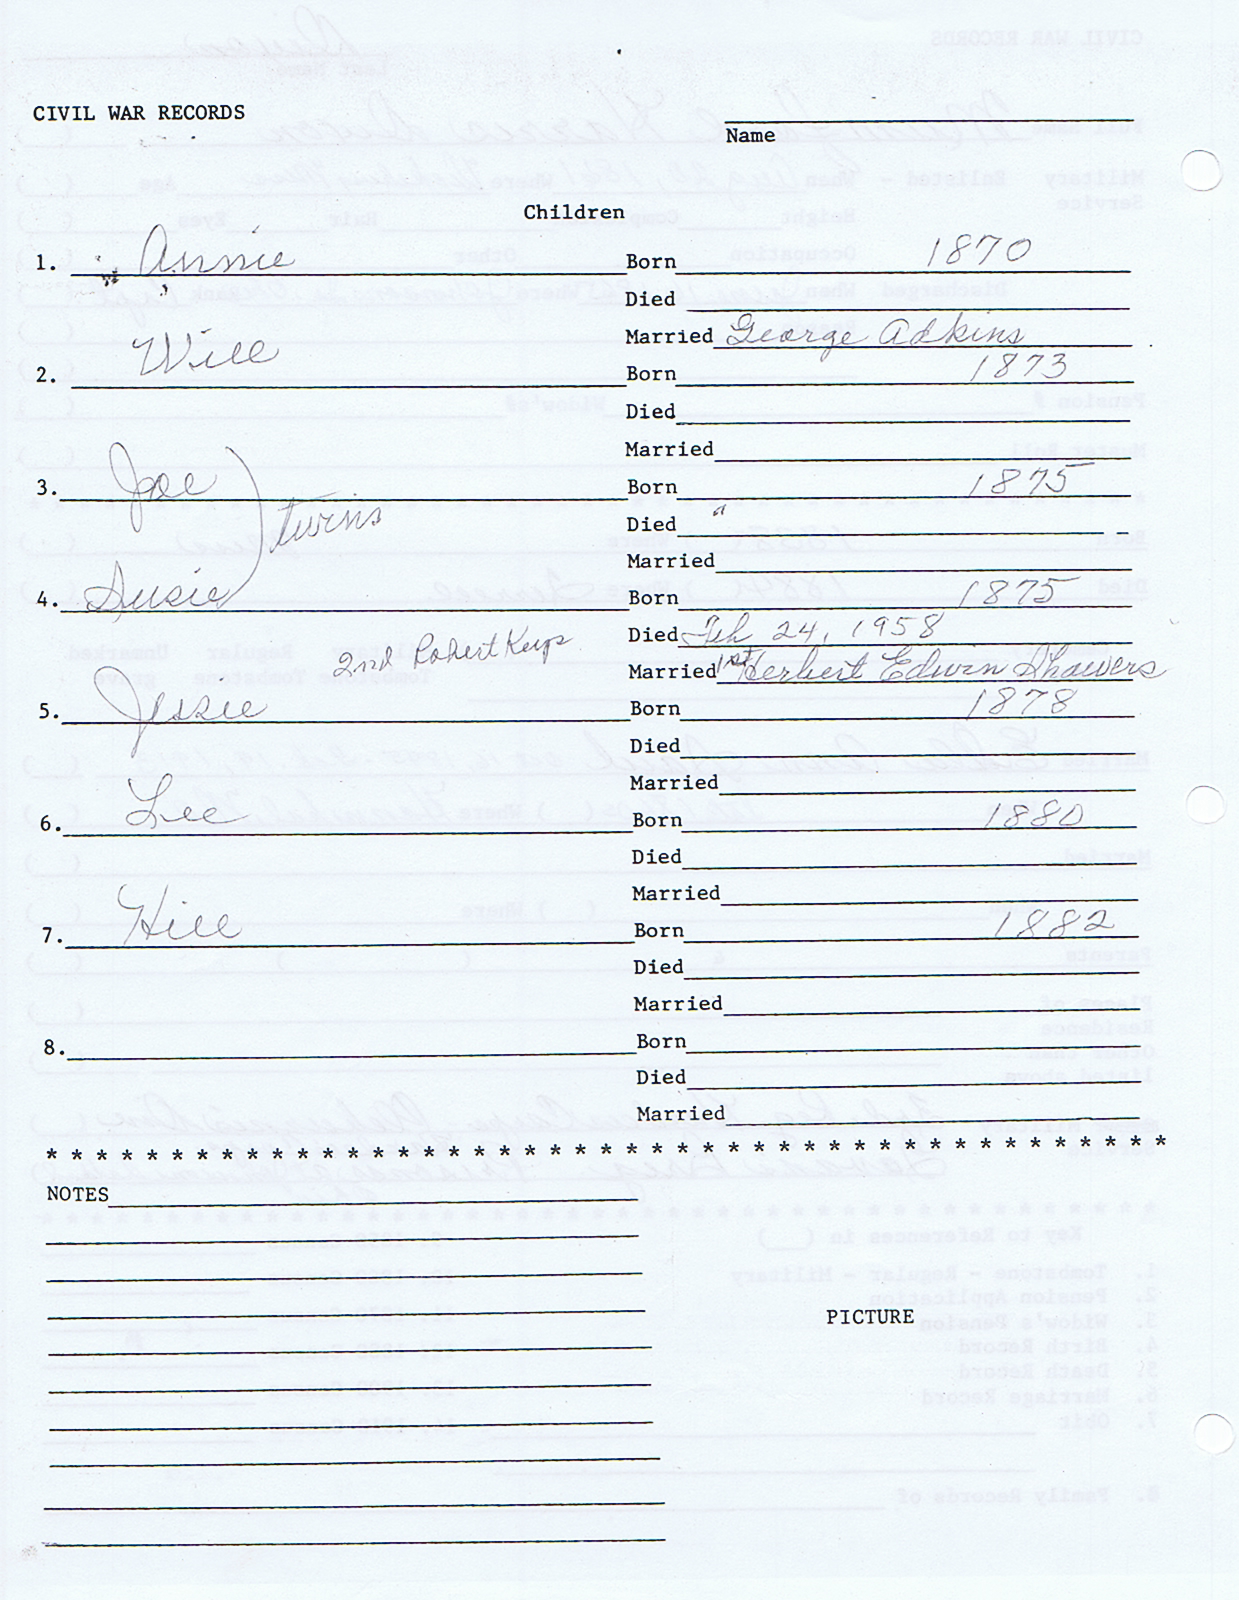 dixon-kaufman_civil_war_records-3517a